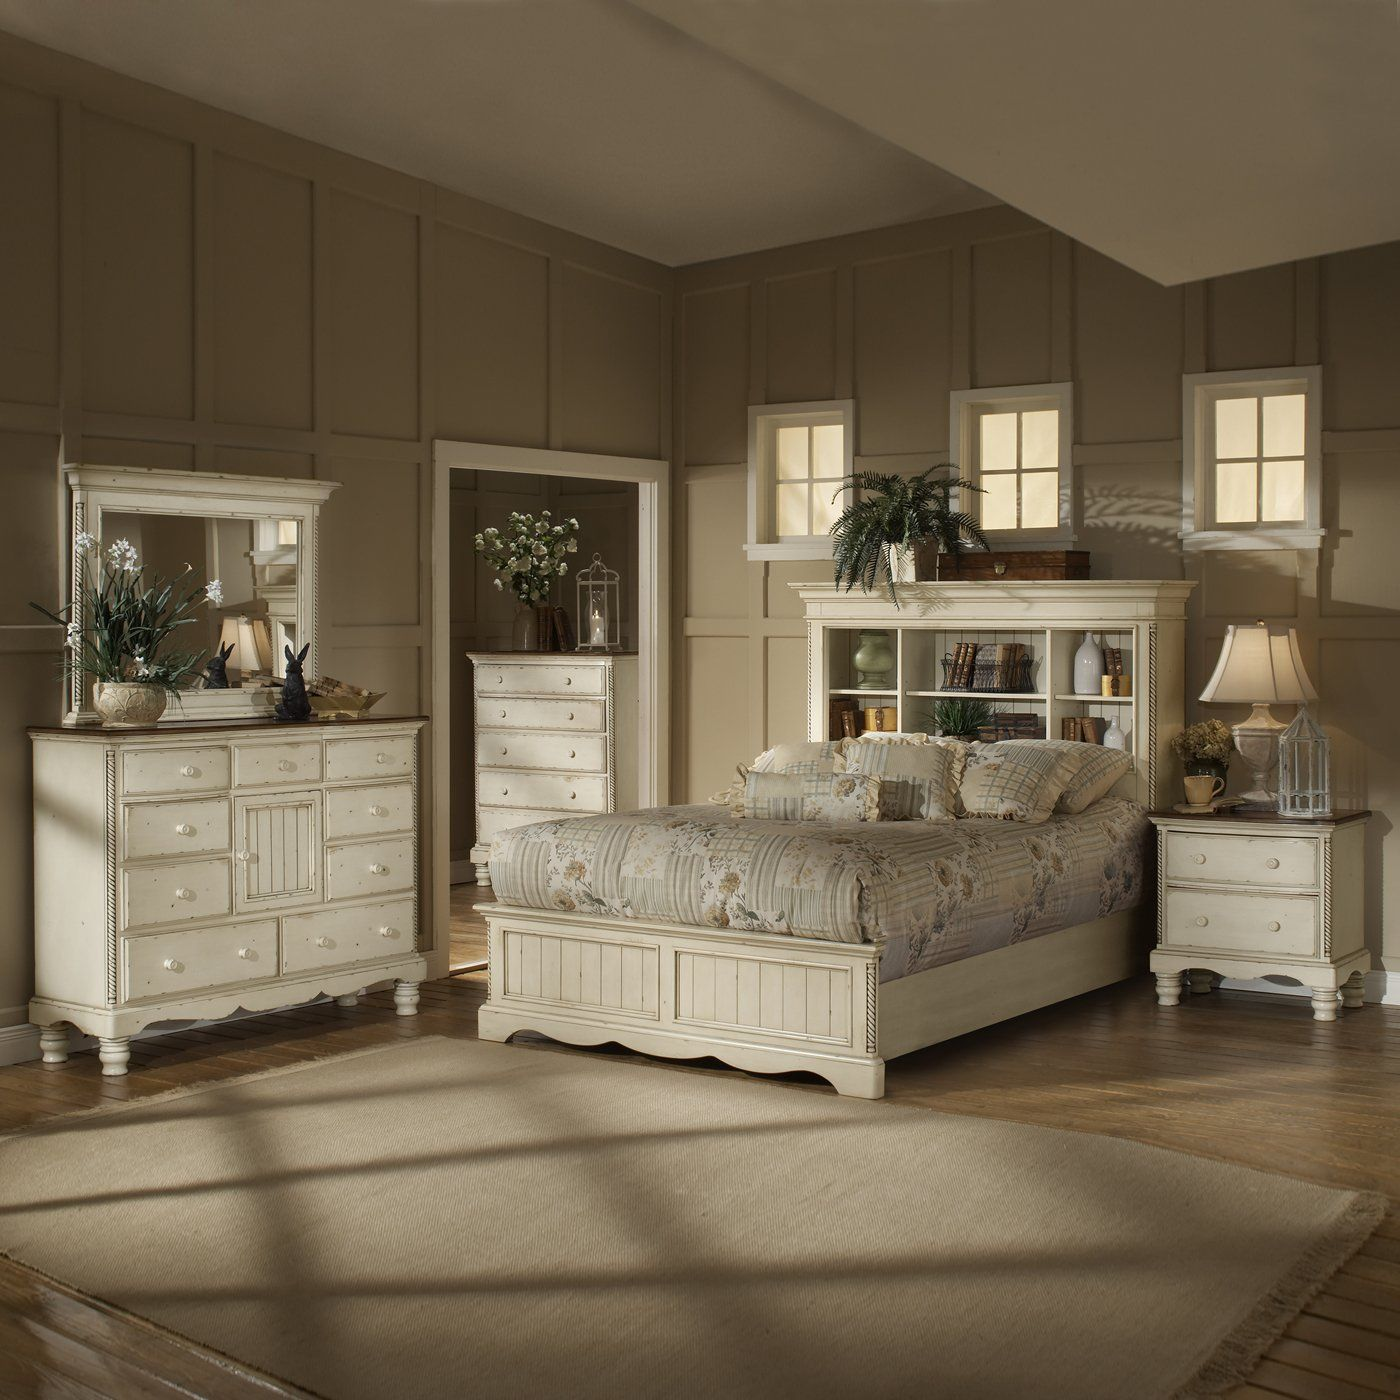 Hillsdale Furniture 1172 Wilshire Bookcase Headboard Bedroom Set  Antique  White   ATG Stores. Hillsdale Furniture 1172 Wilshire Bookcase Headboard Bedroom Set